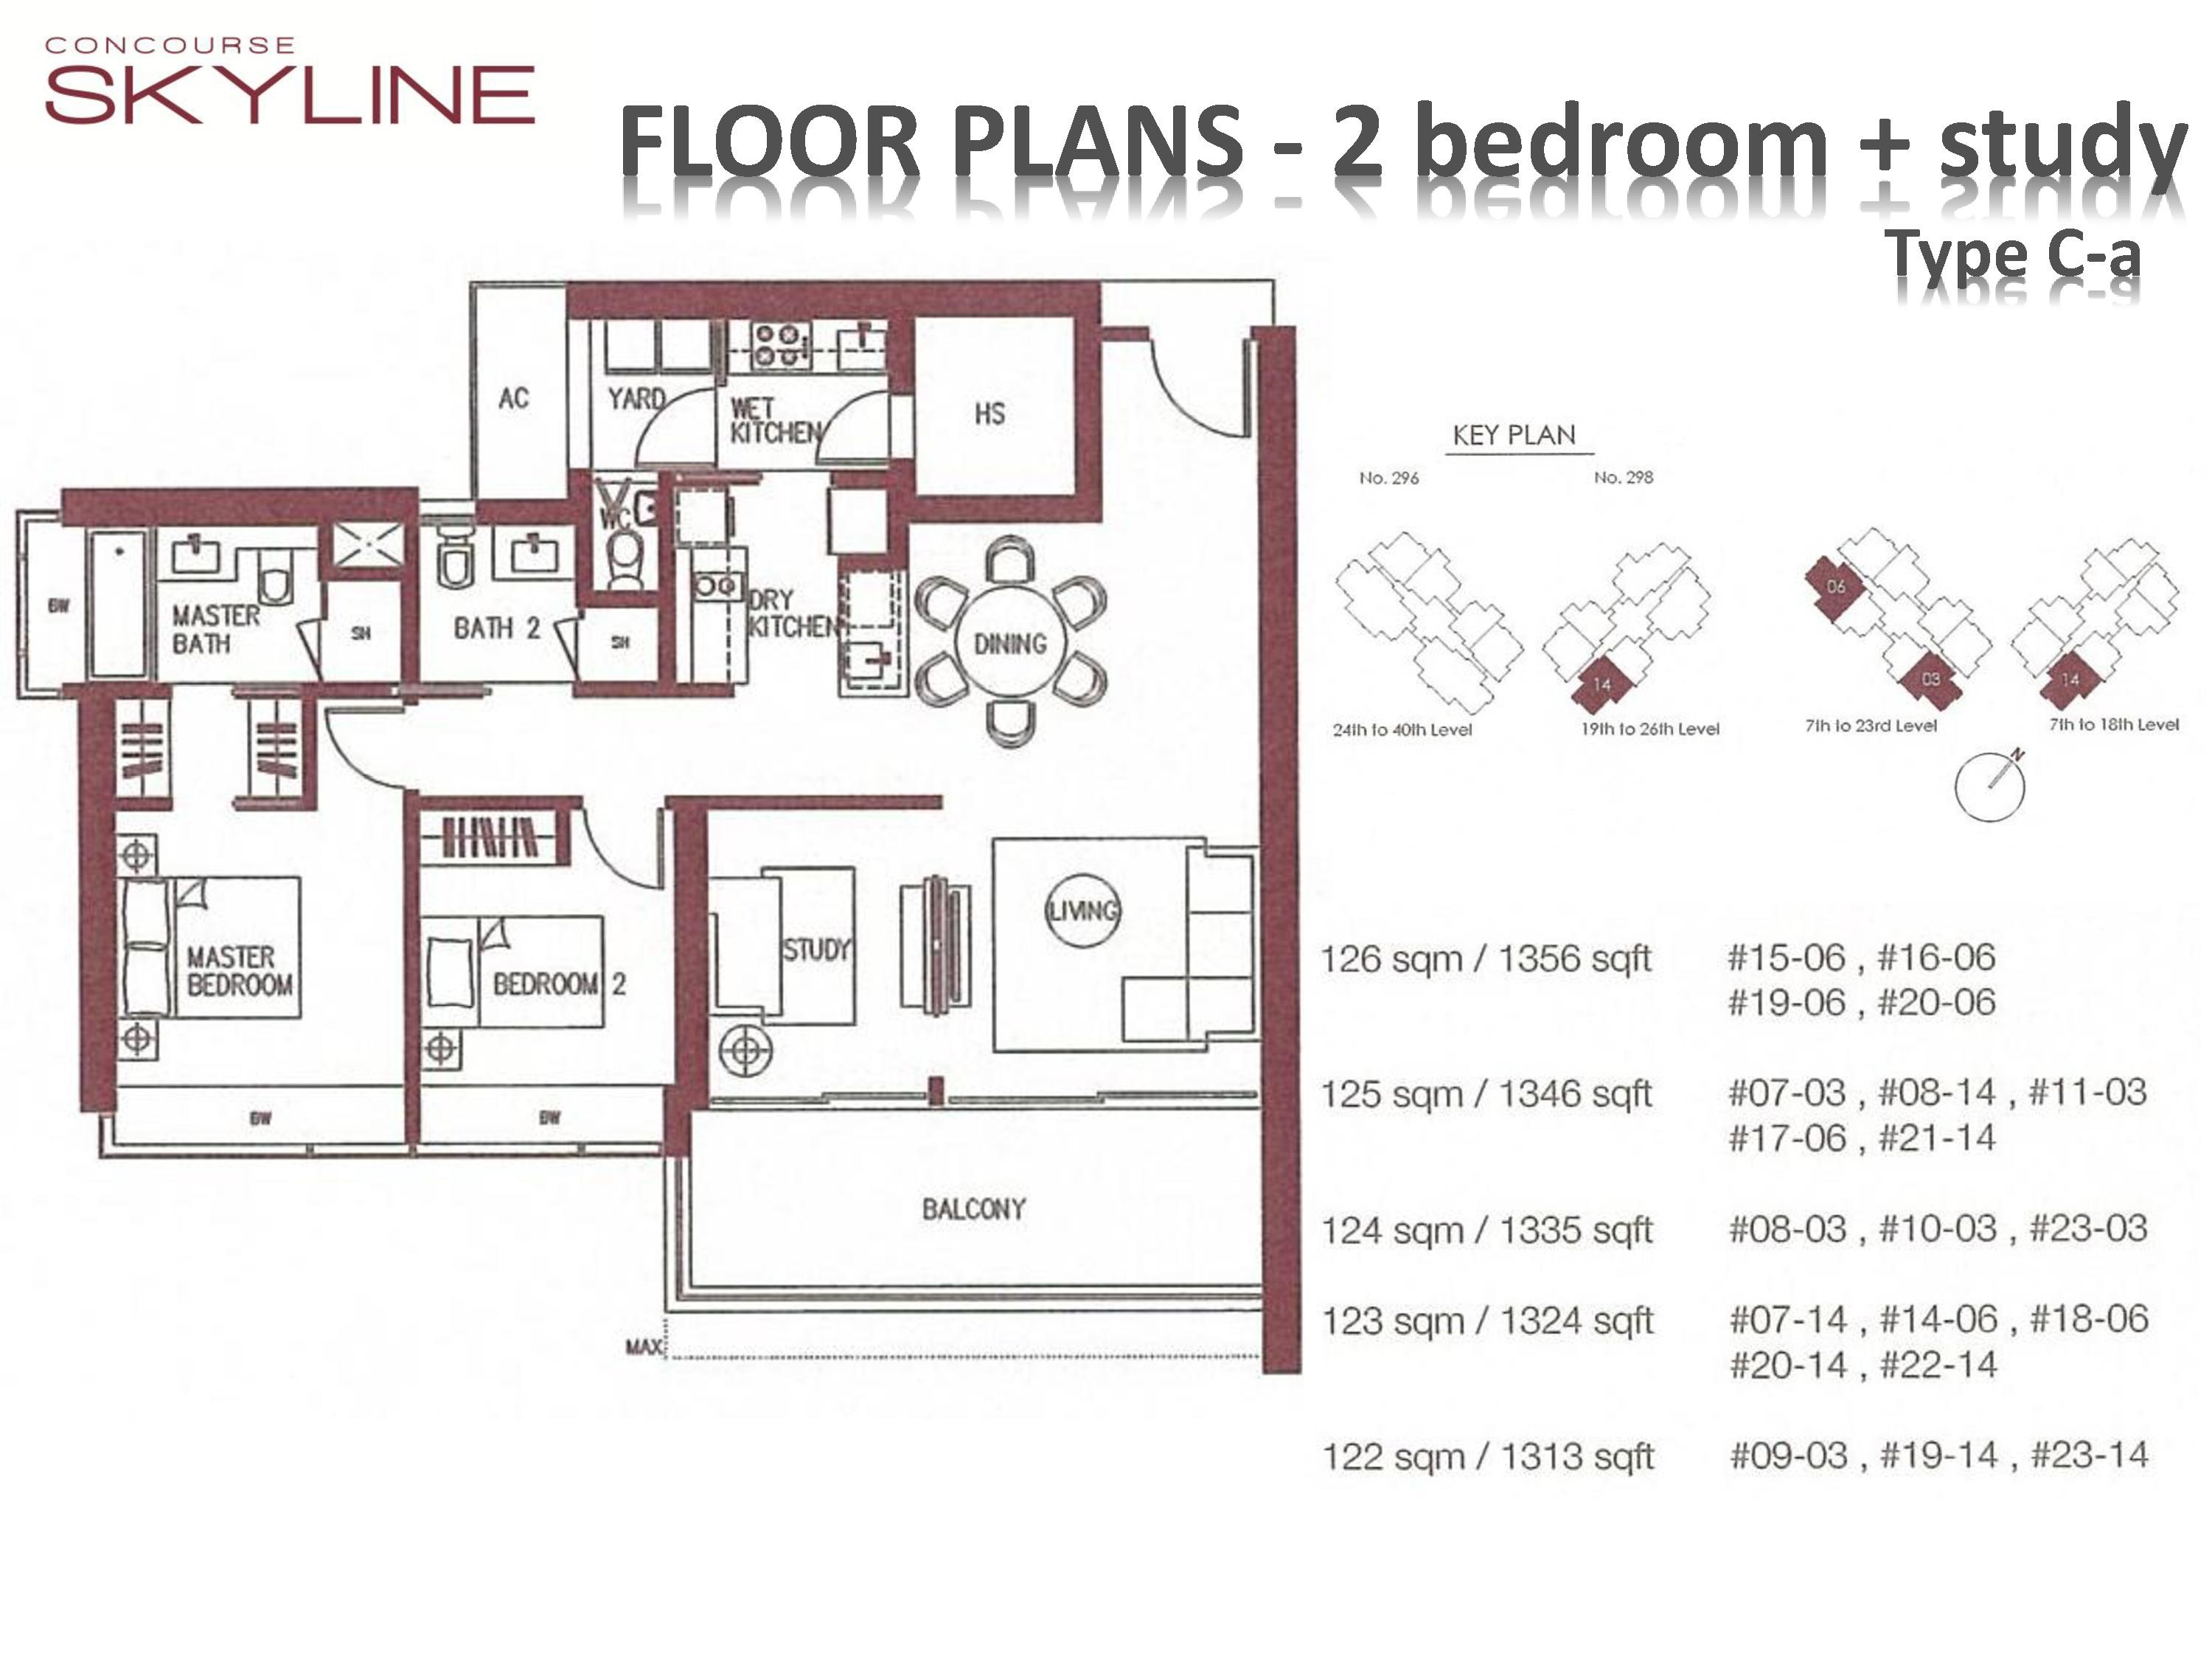 Concourse Skyline 2 Bedroom + Study Type C-a Floor Plans